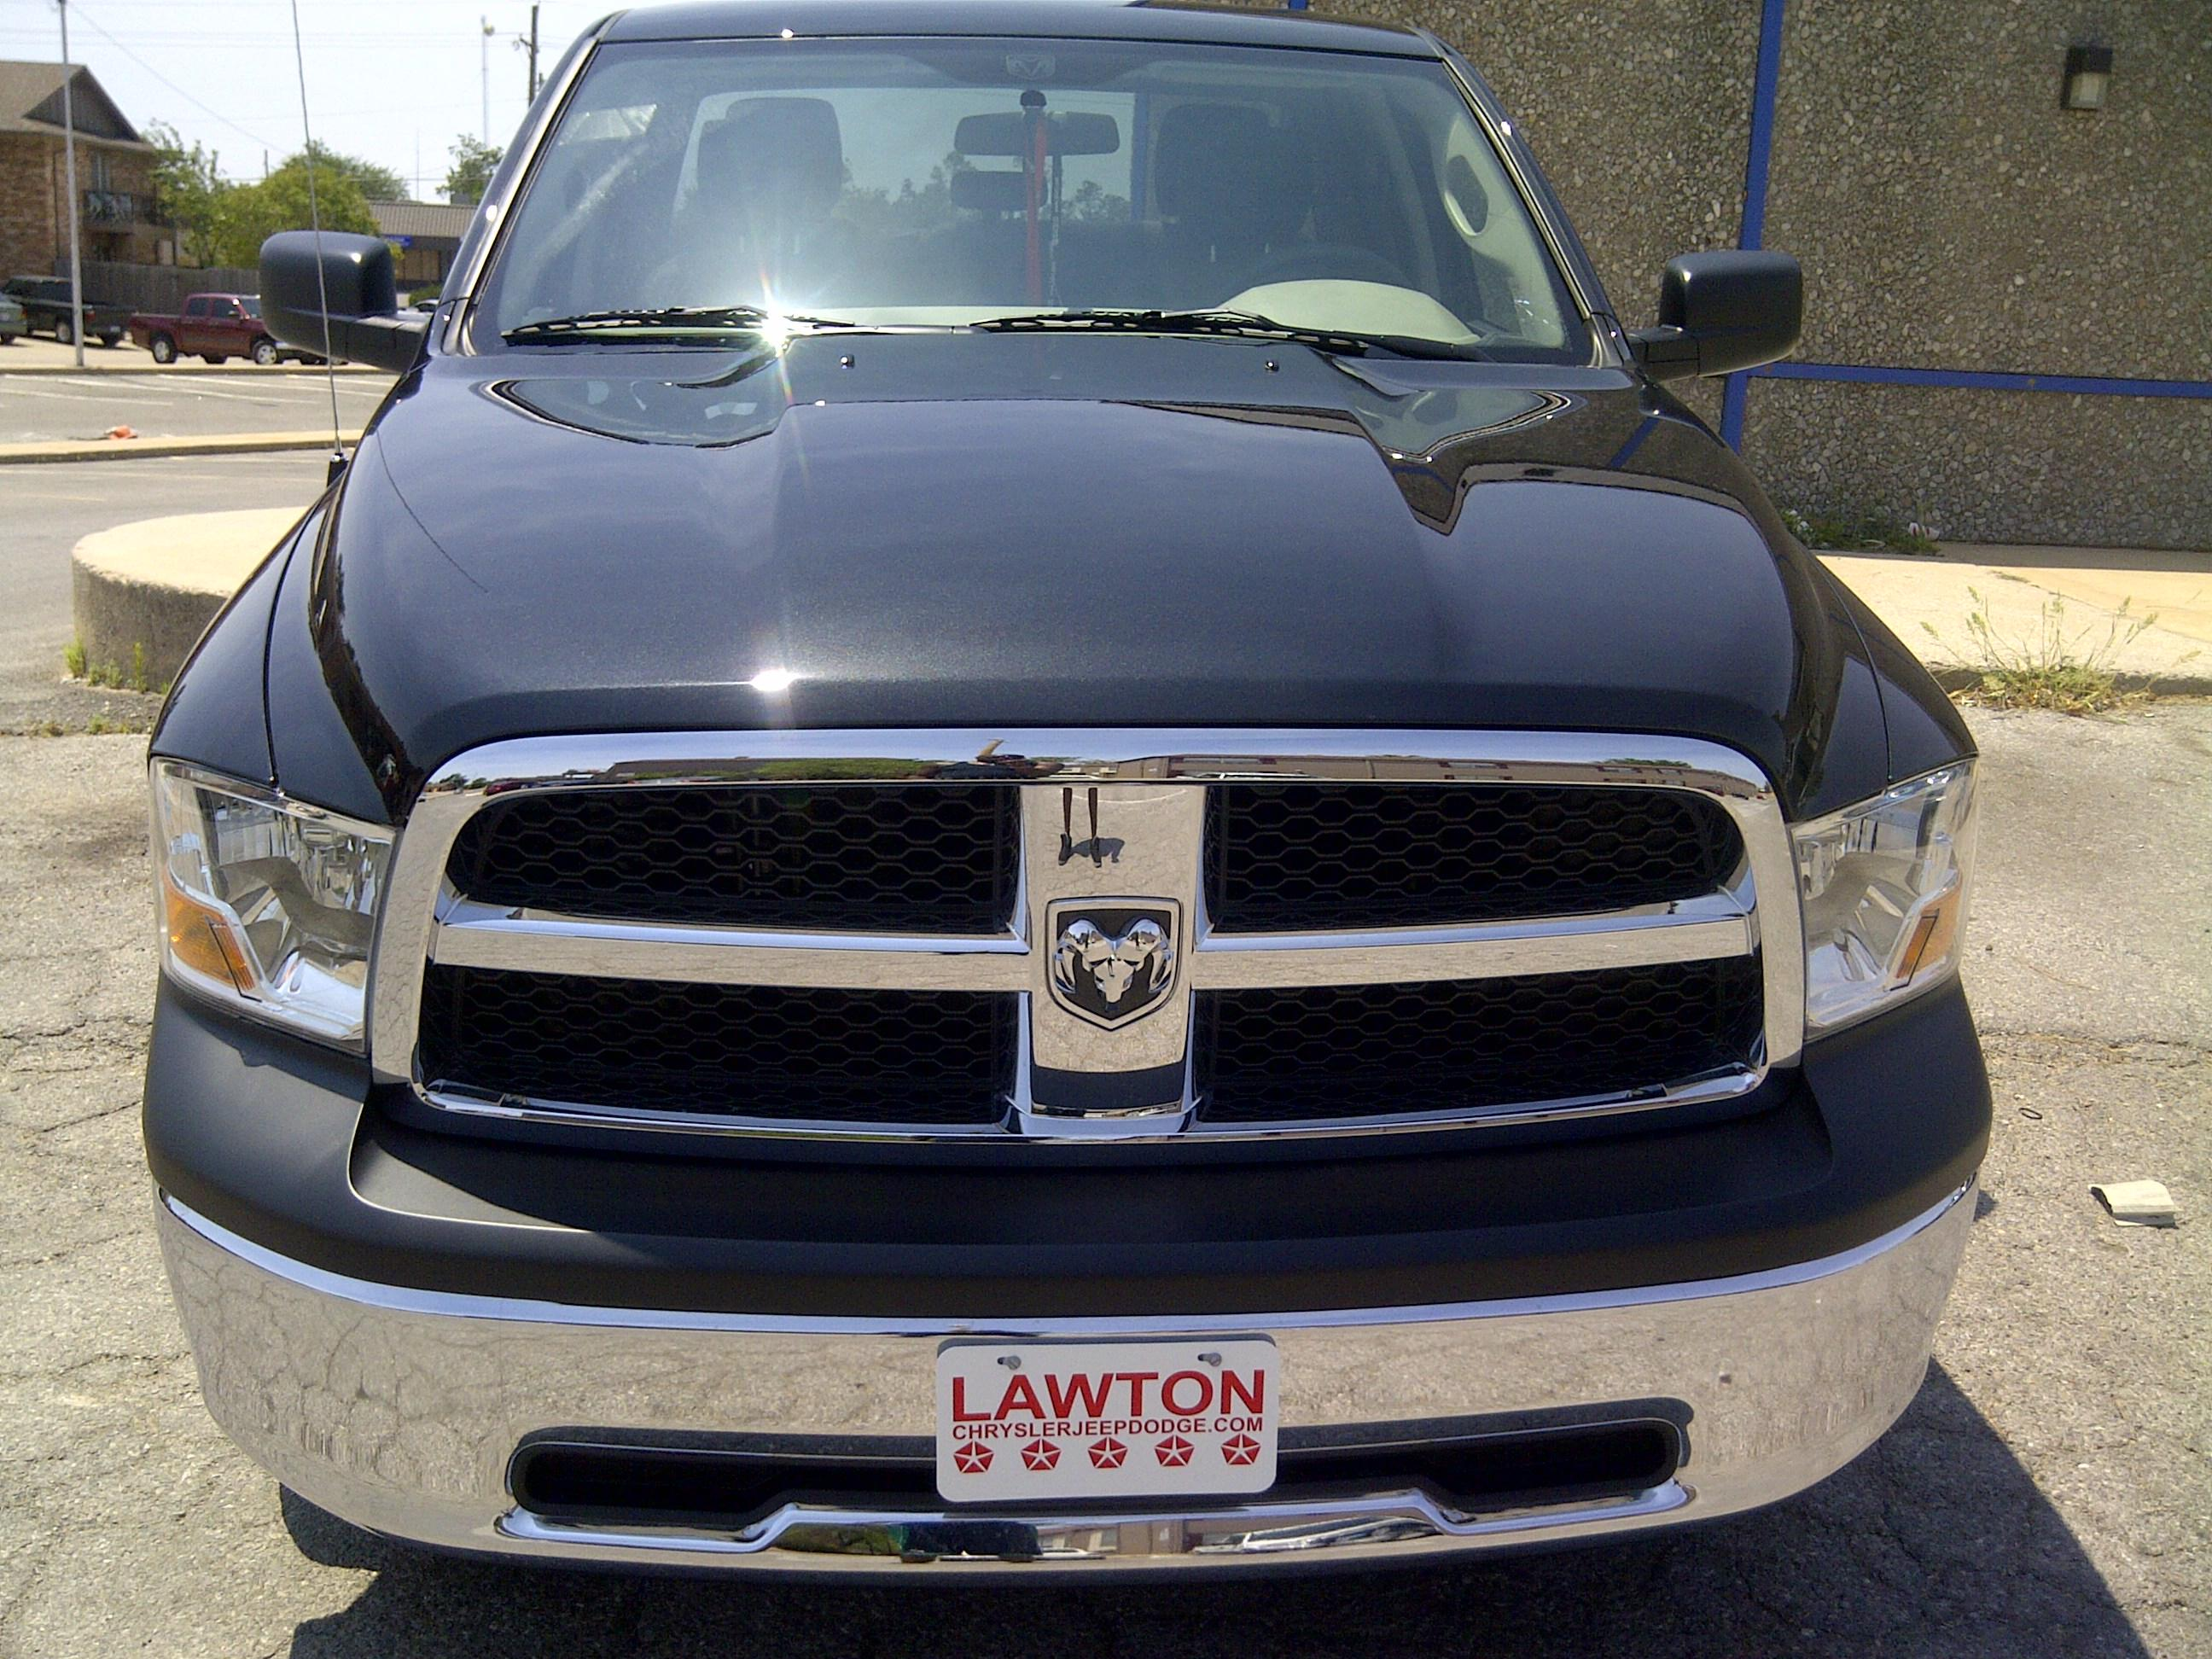 Will_sWheels's 2011 Dodge Ram 1500 Quad Cab